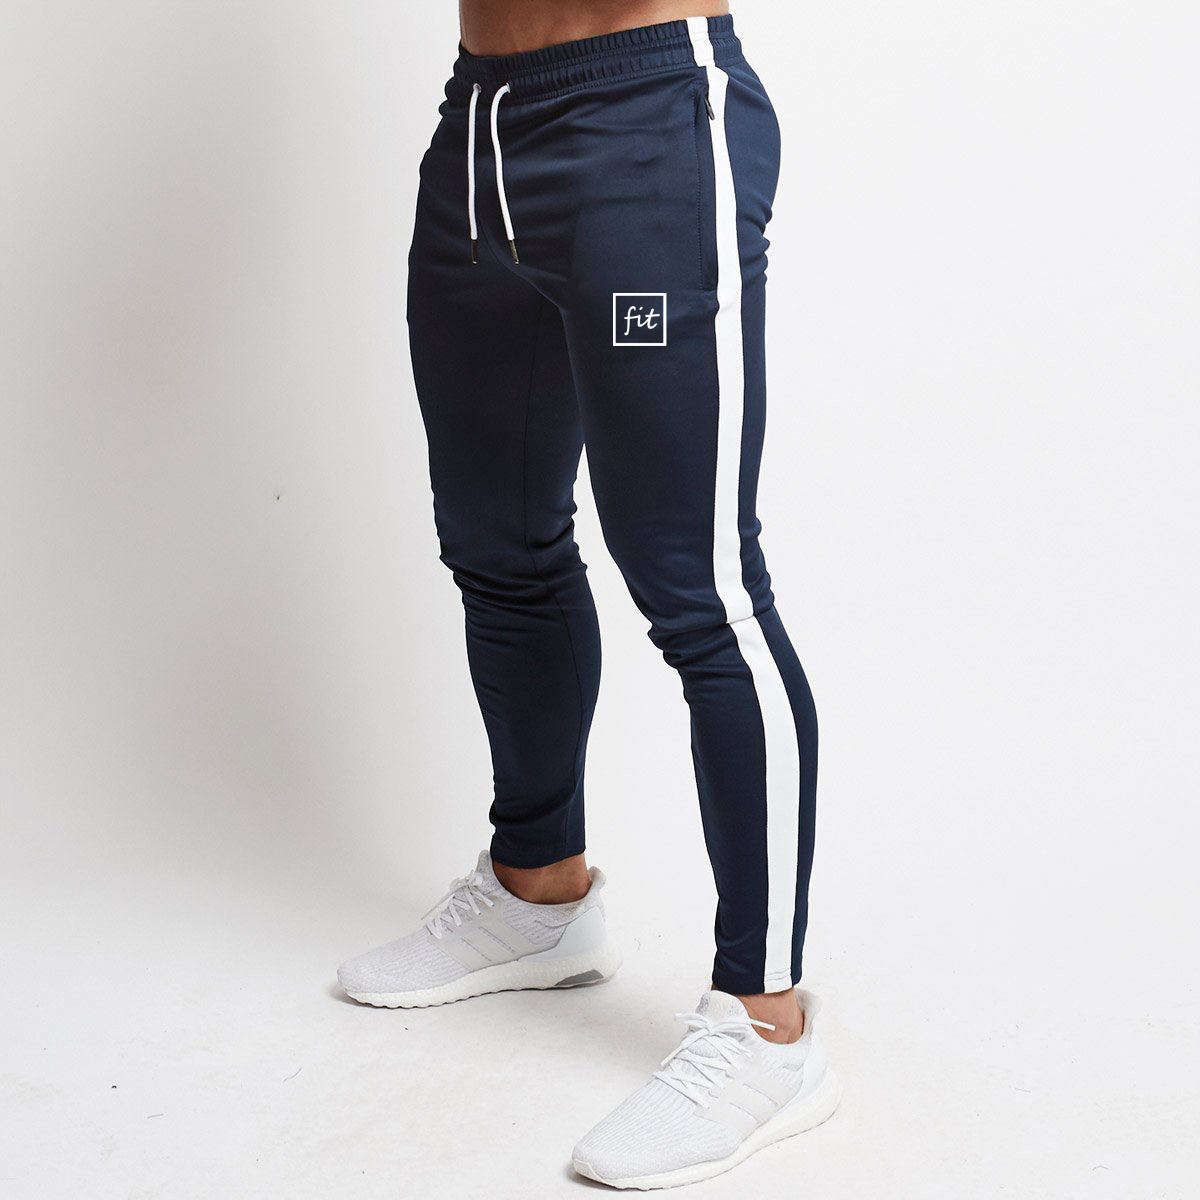 MS-2438 white stripe Jogger trackpants men joggers cotton pant